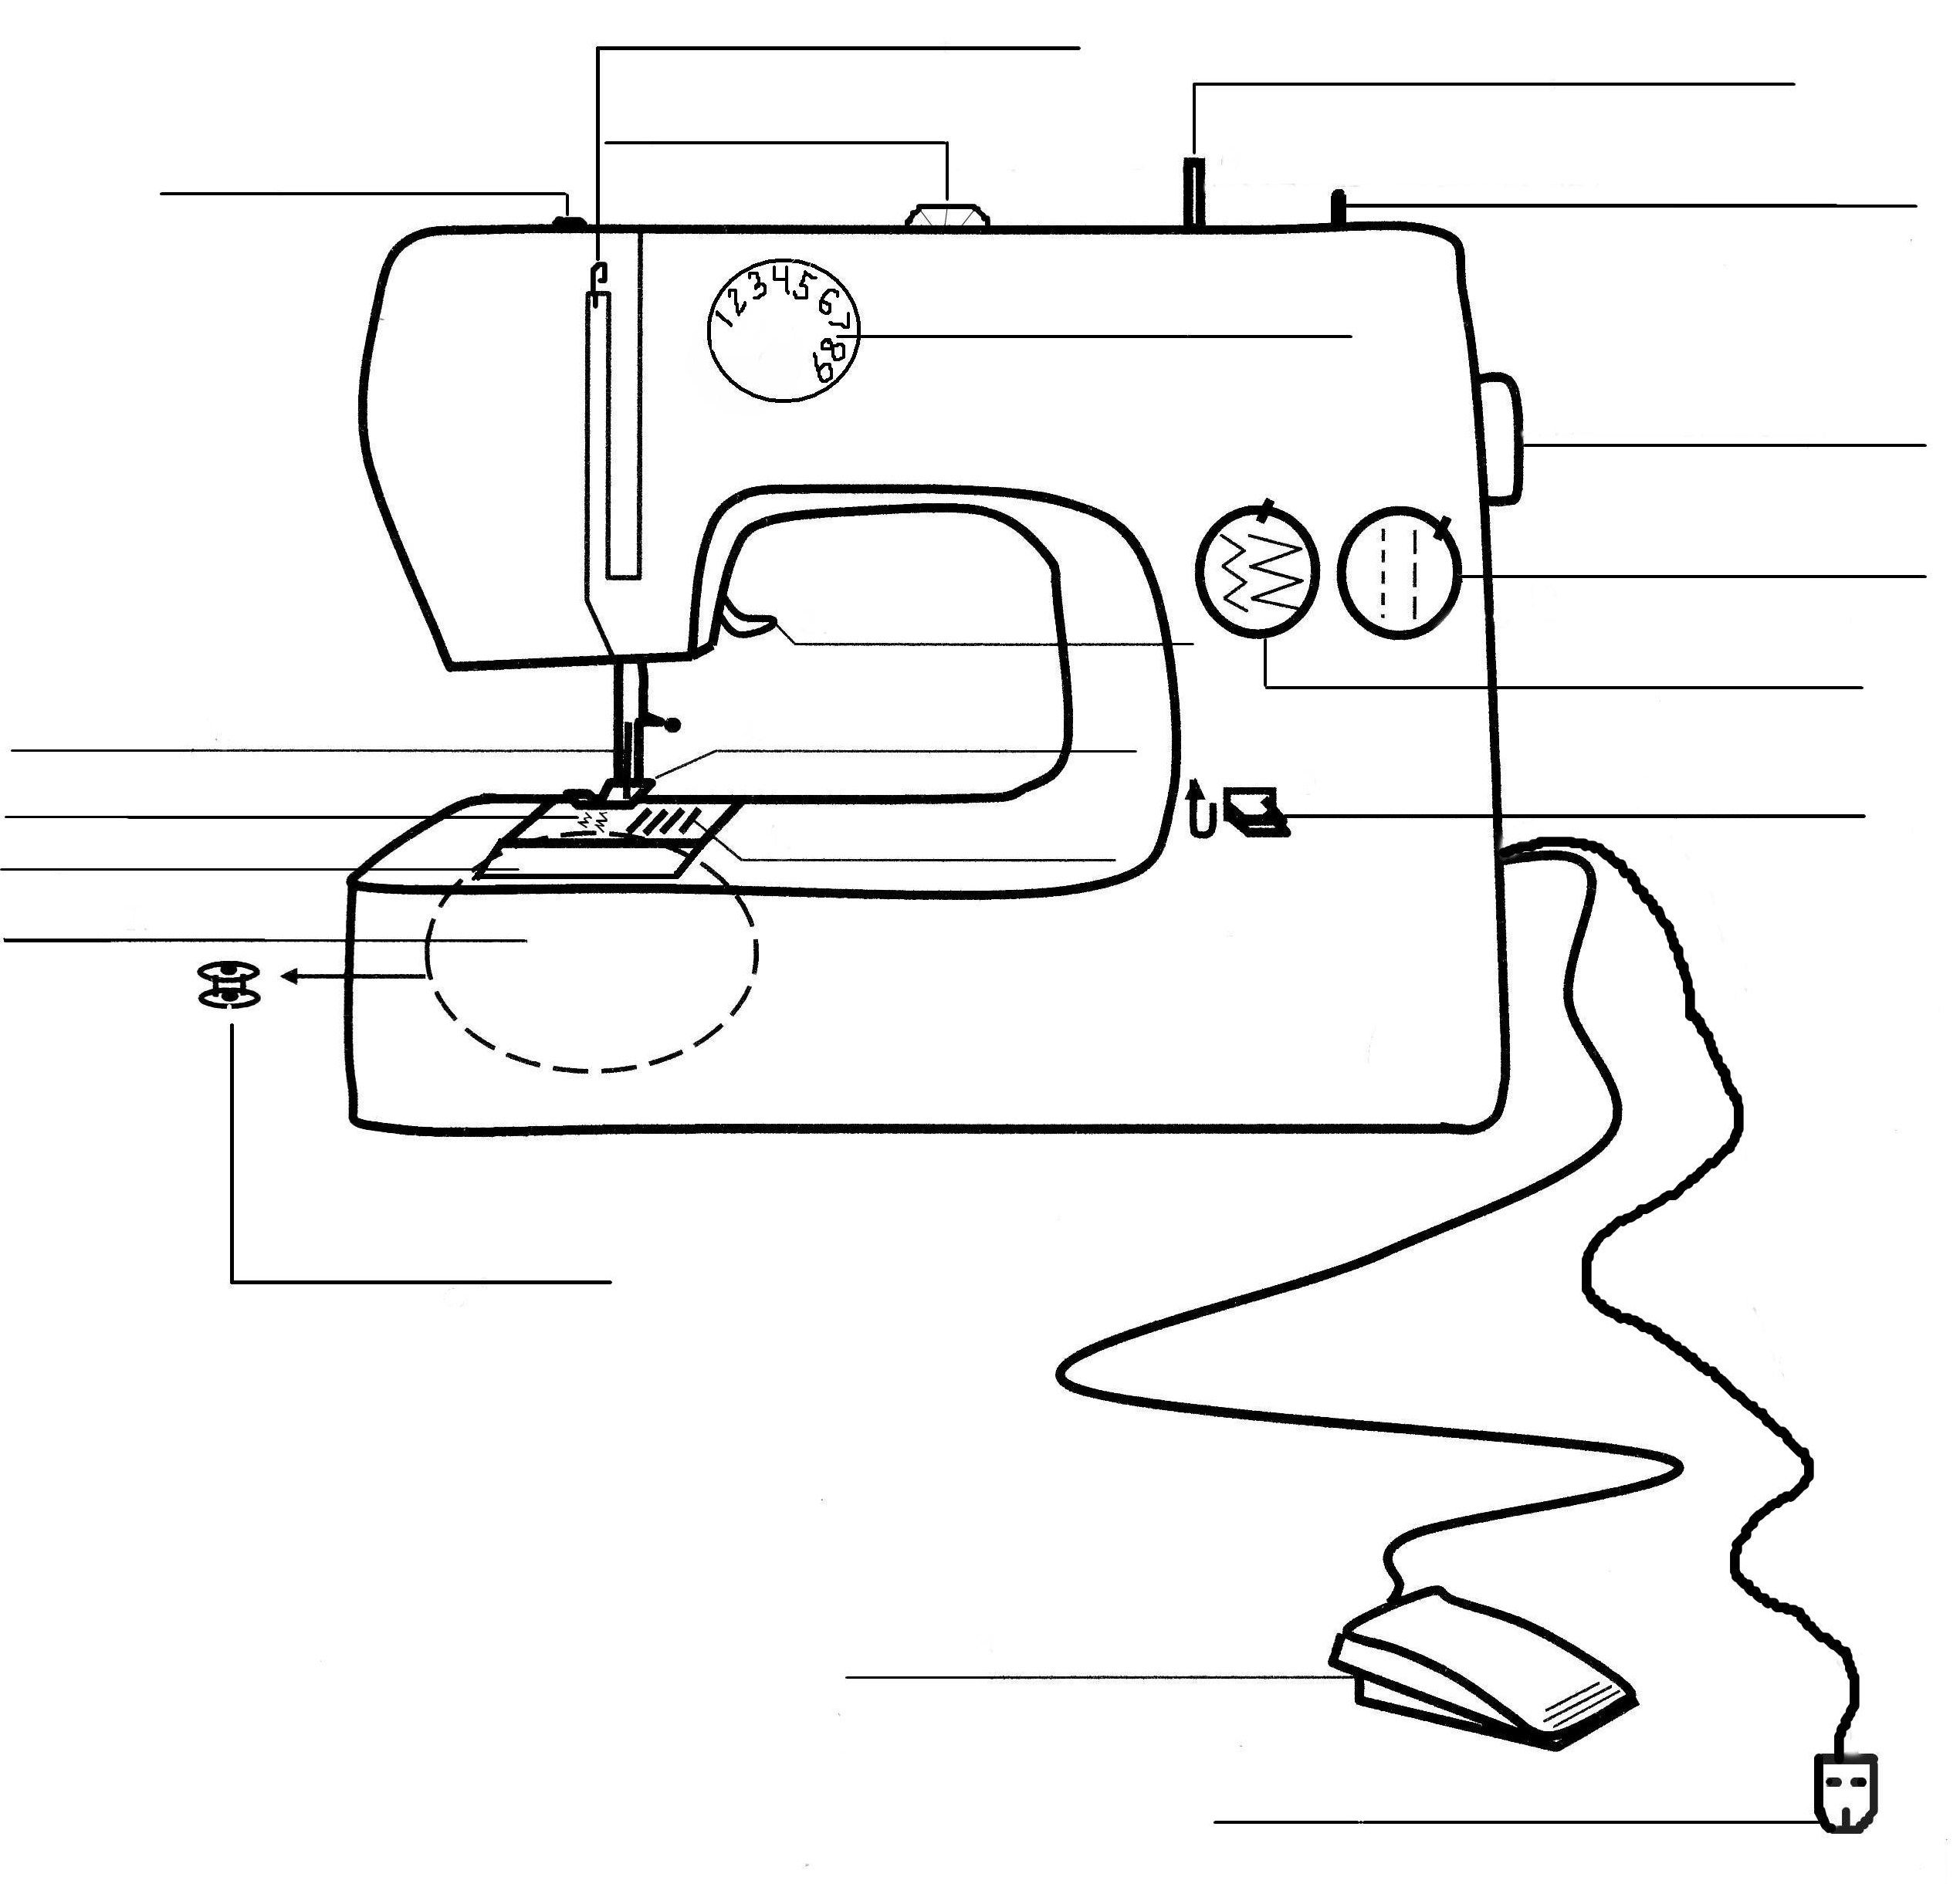 Fill in the blank sewing machine parts | AAA EMBROIDERY | Sewing ...